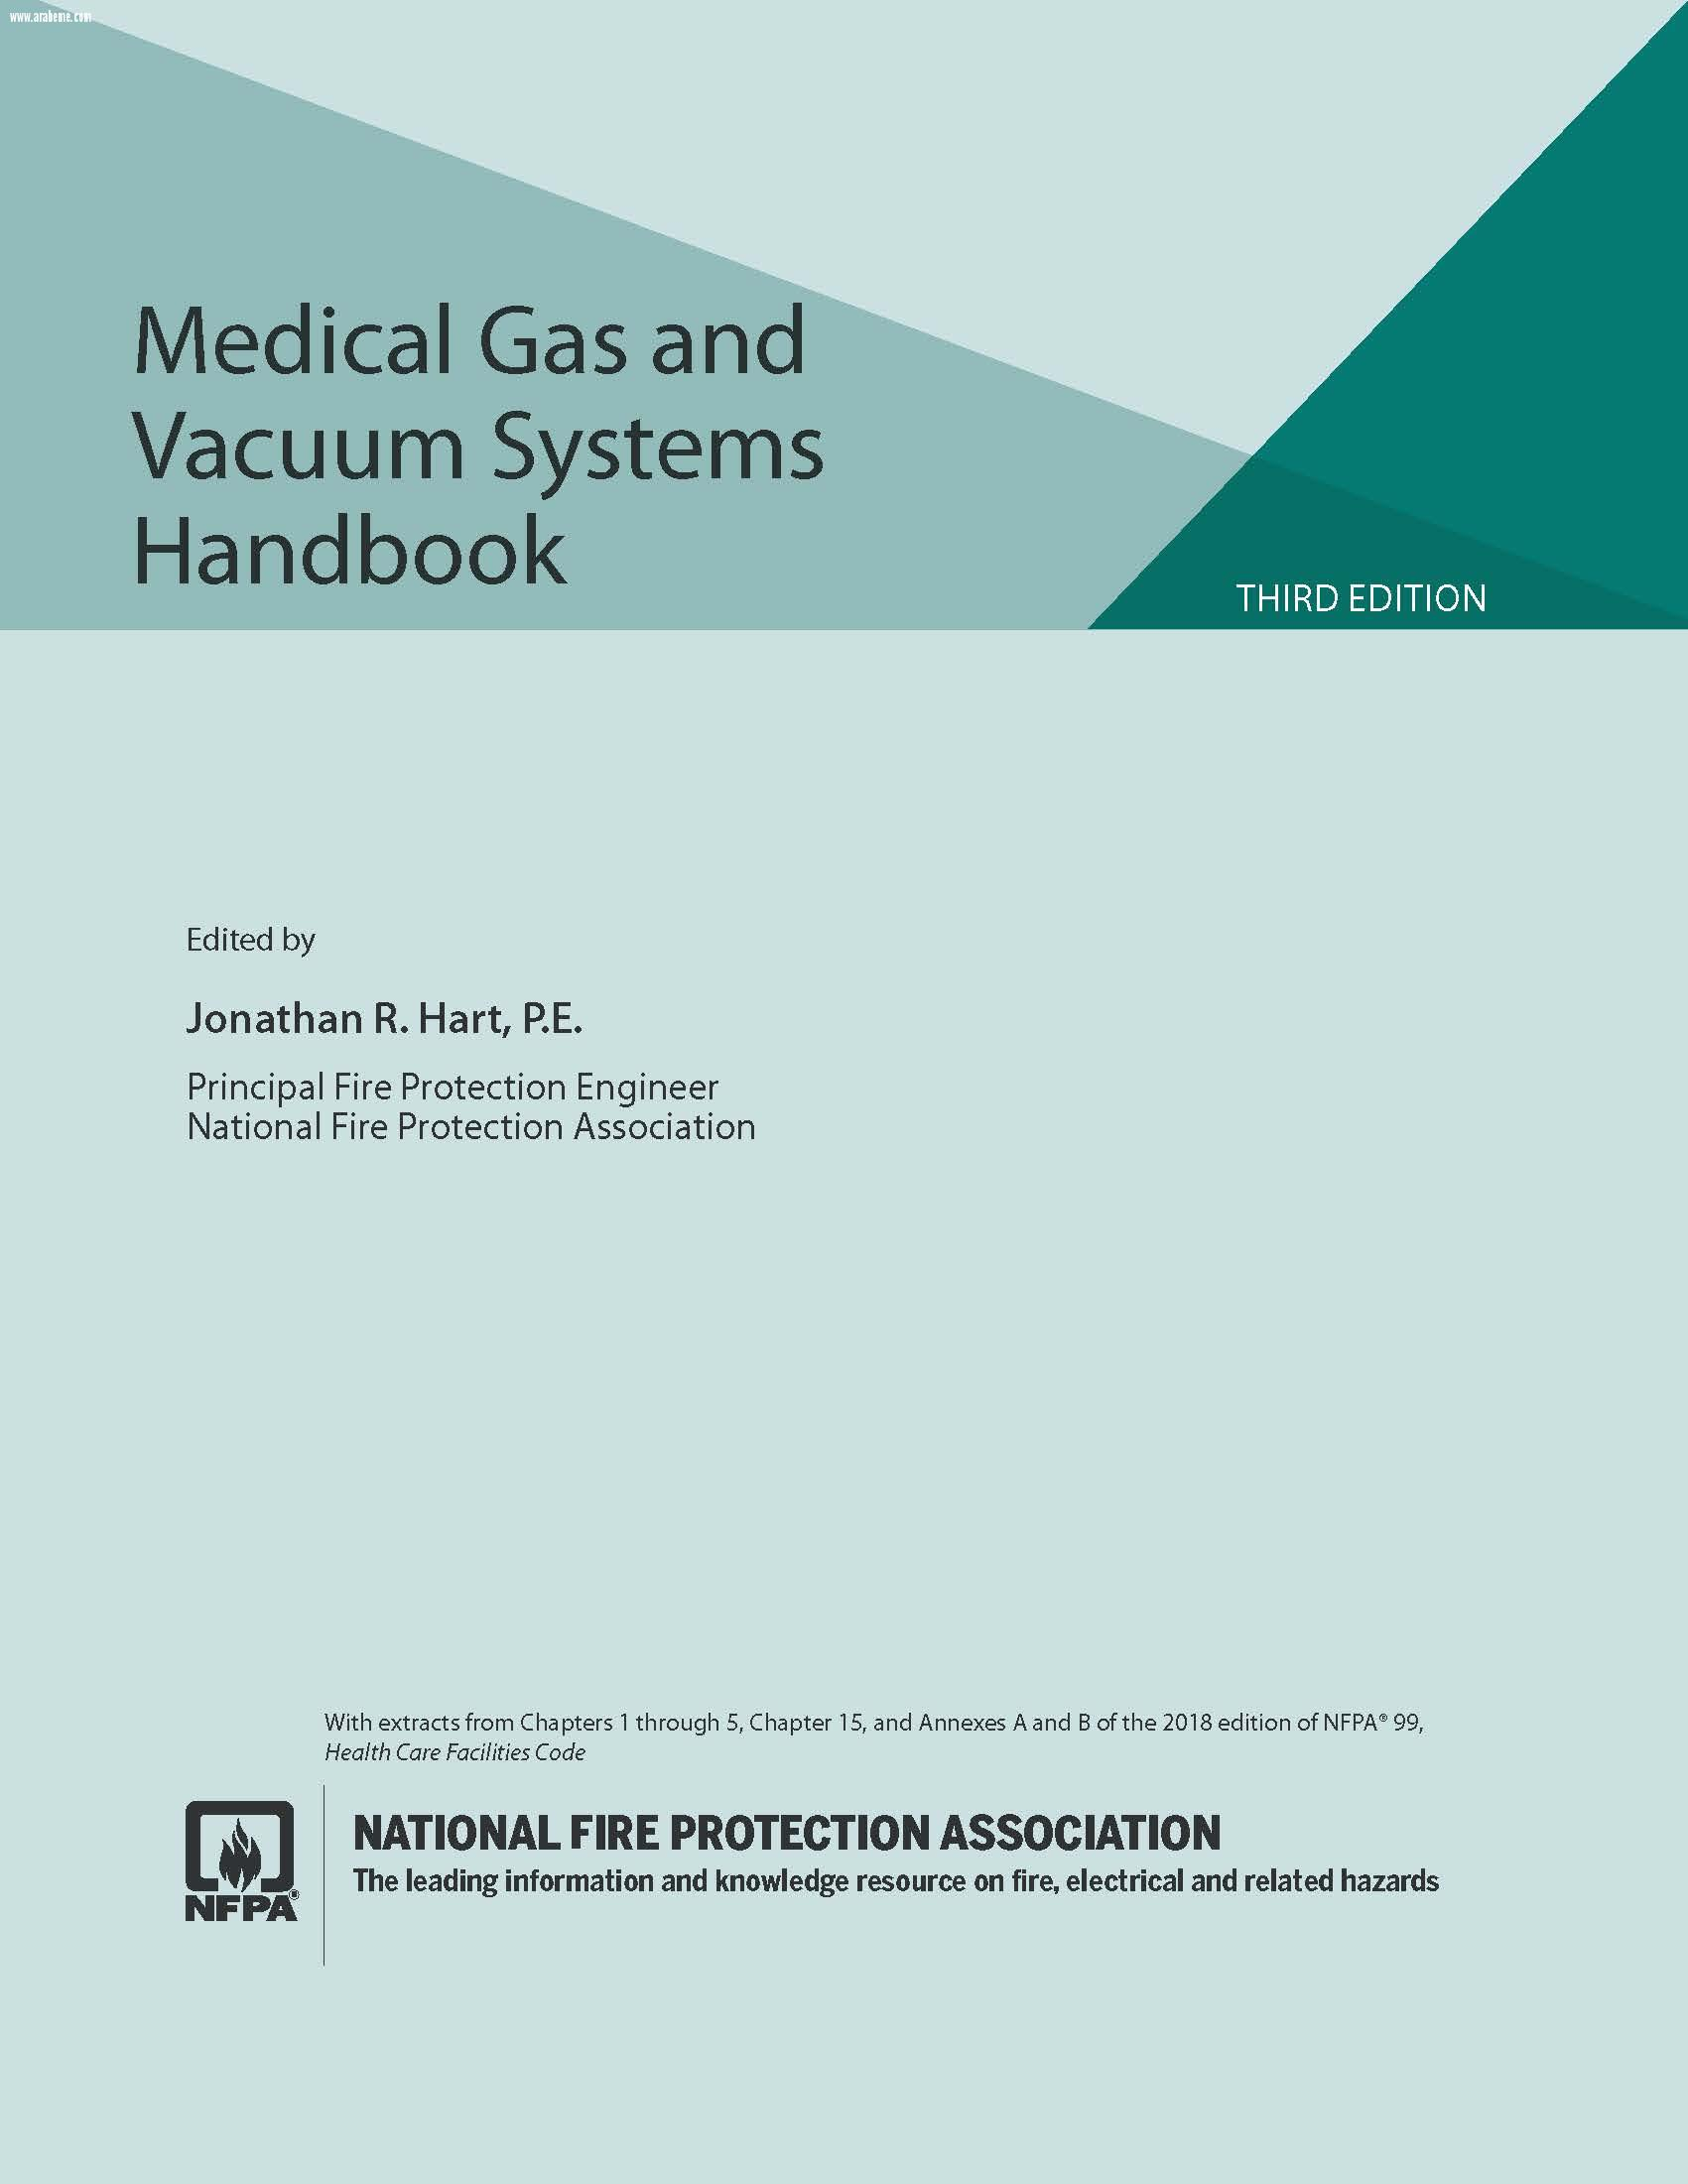 Medical Gas and Vacuum Systems Handbook NFPA 99: Health Care Facilities Code